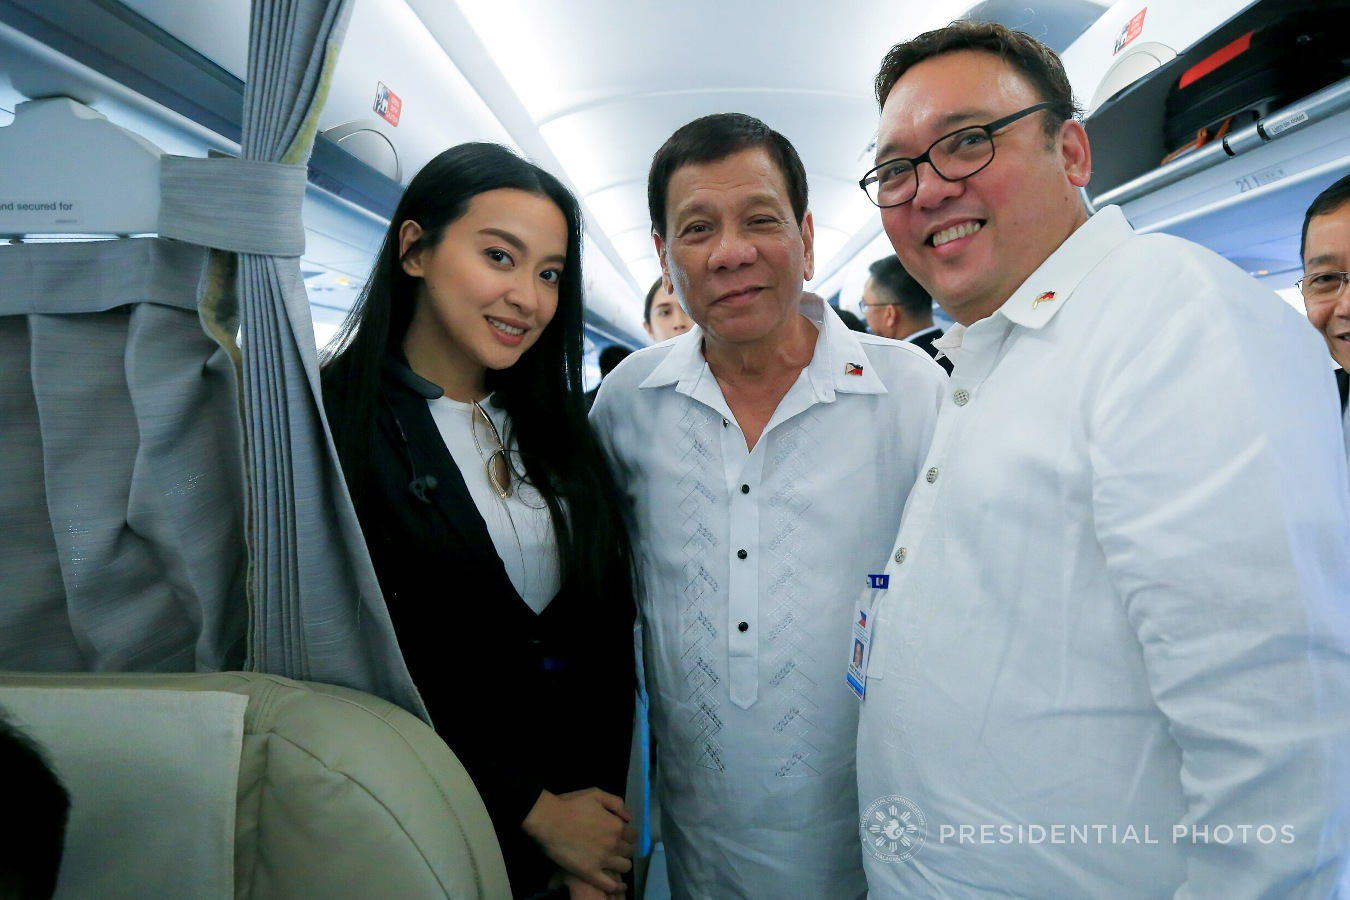 FILE: President Rodrigo Roa Duterte poses for a photo with Presidential Communications Assistant Secretary Margaux 'Mocha' Uson and Presidential Spokesperson Harry Roque while on board the Philippine Airlines chartered flight prior to their departure for Vietnam on November 8, 2017. ALBERT ALCAIN/PRESIDENTIAL PHOTO